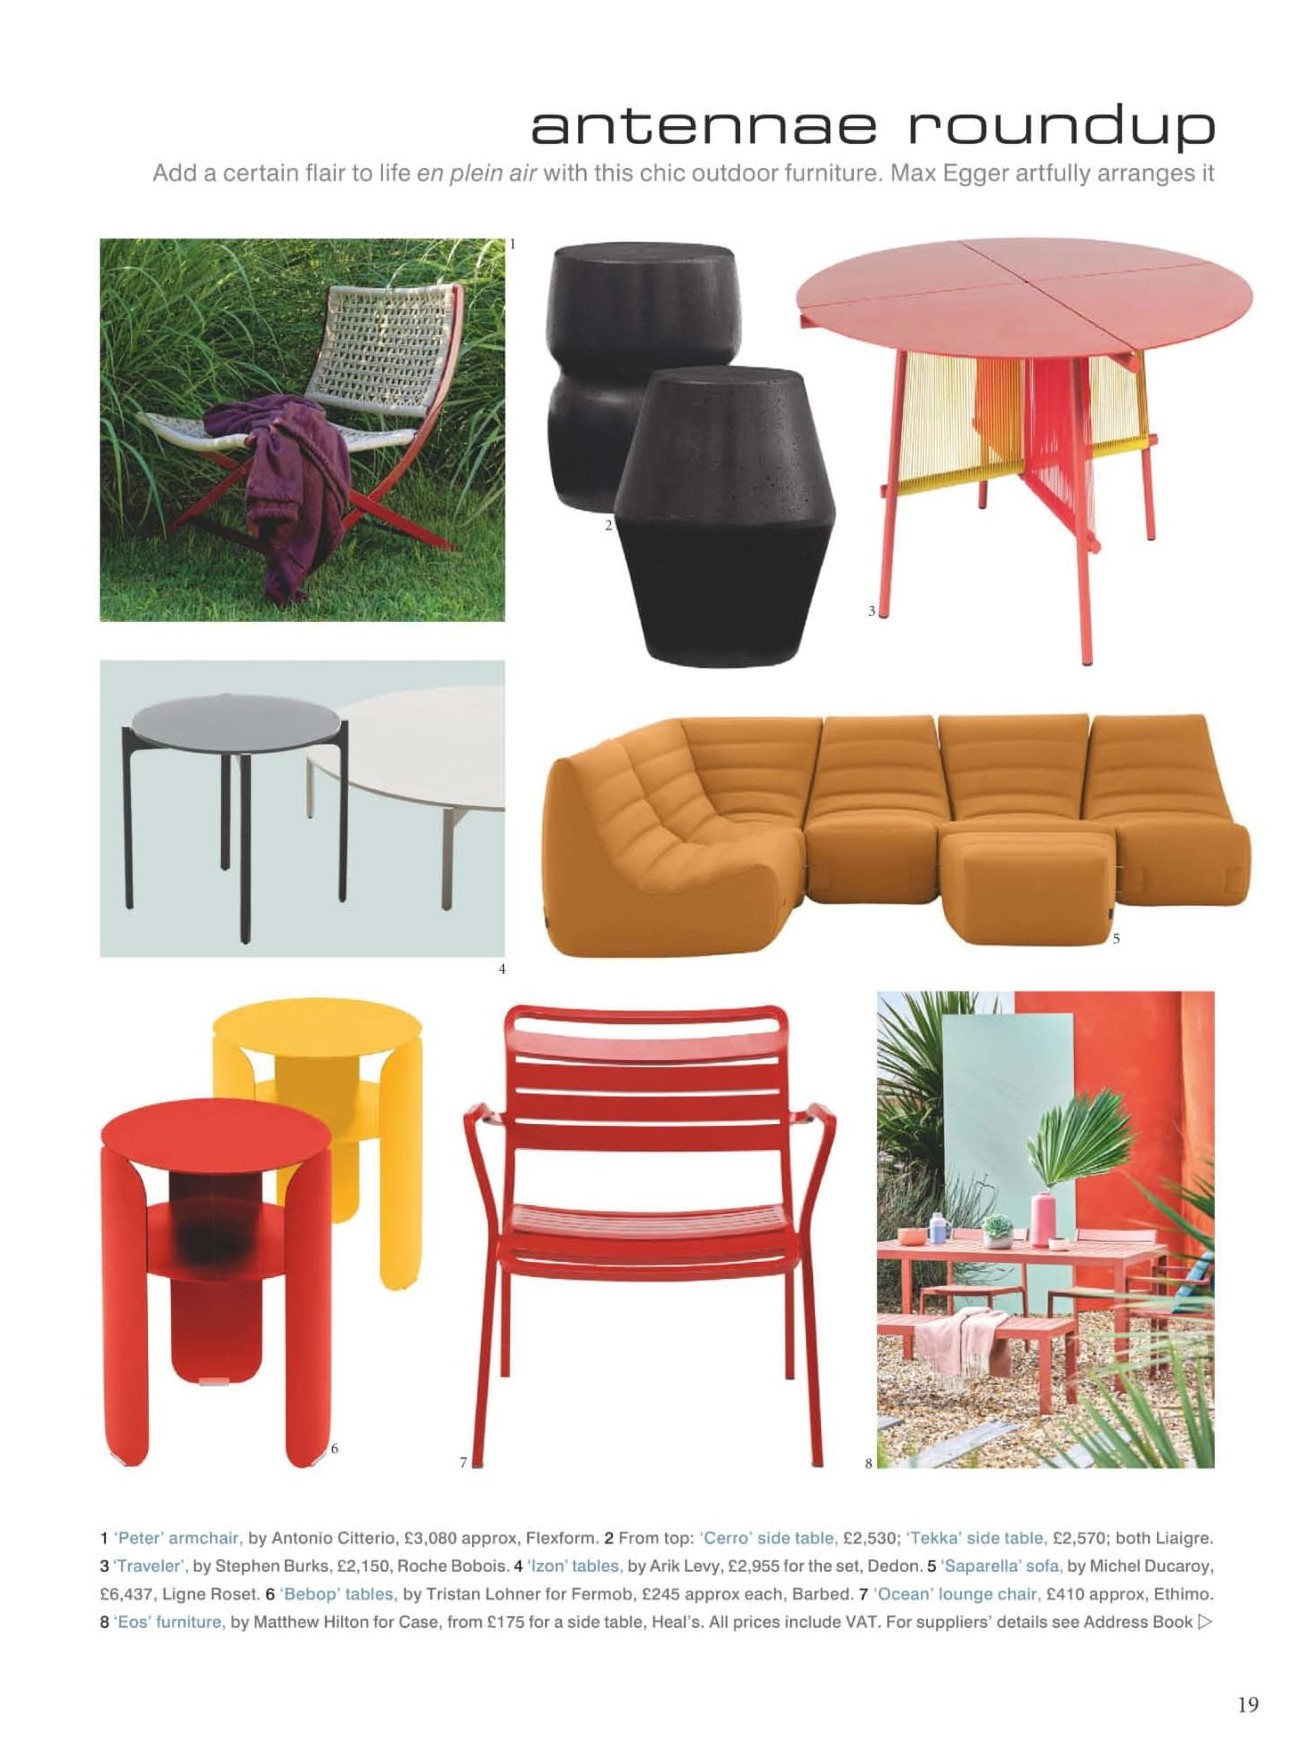 Add flair to life in plein air with Ligne Roset's sumptious Saparella, says World of Interiors